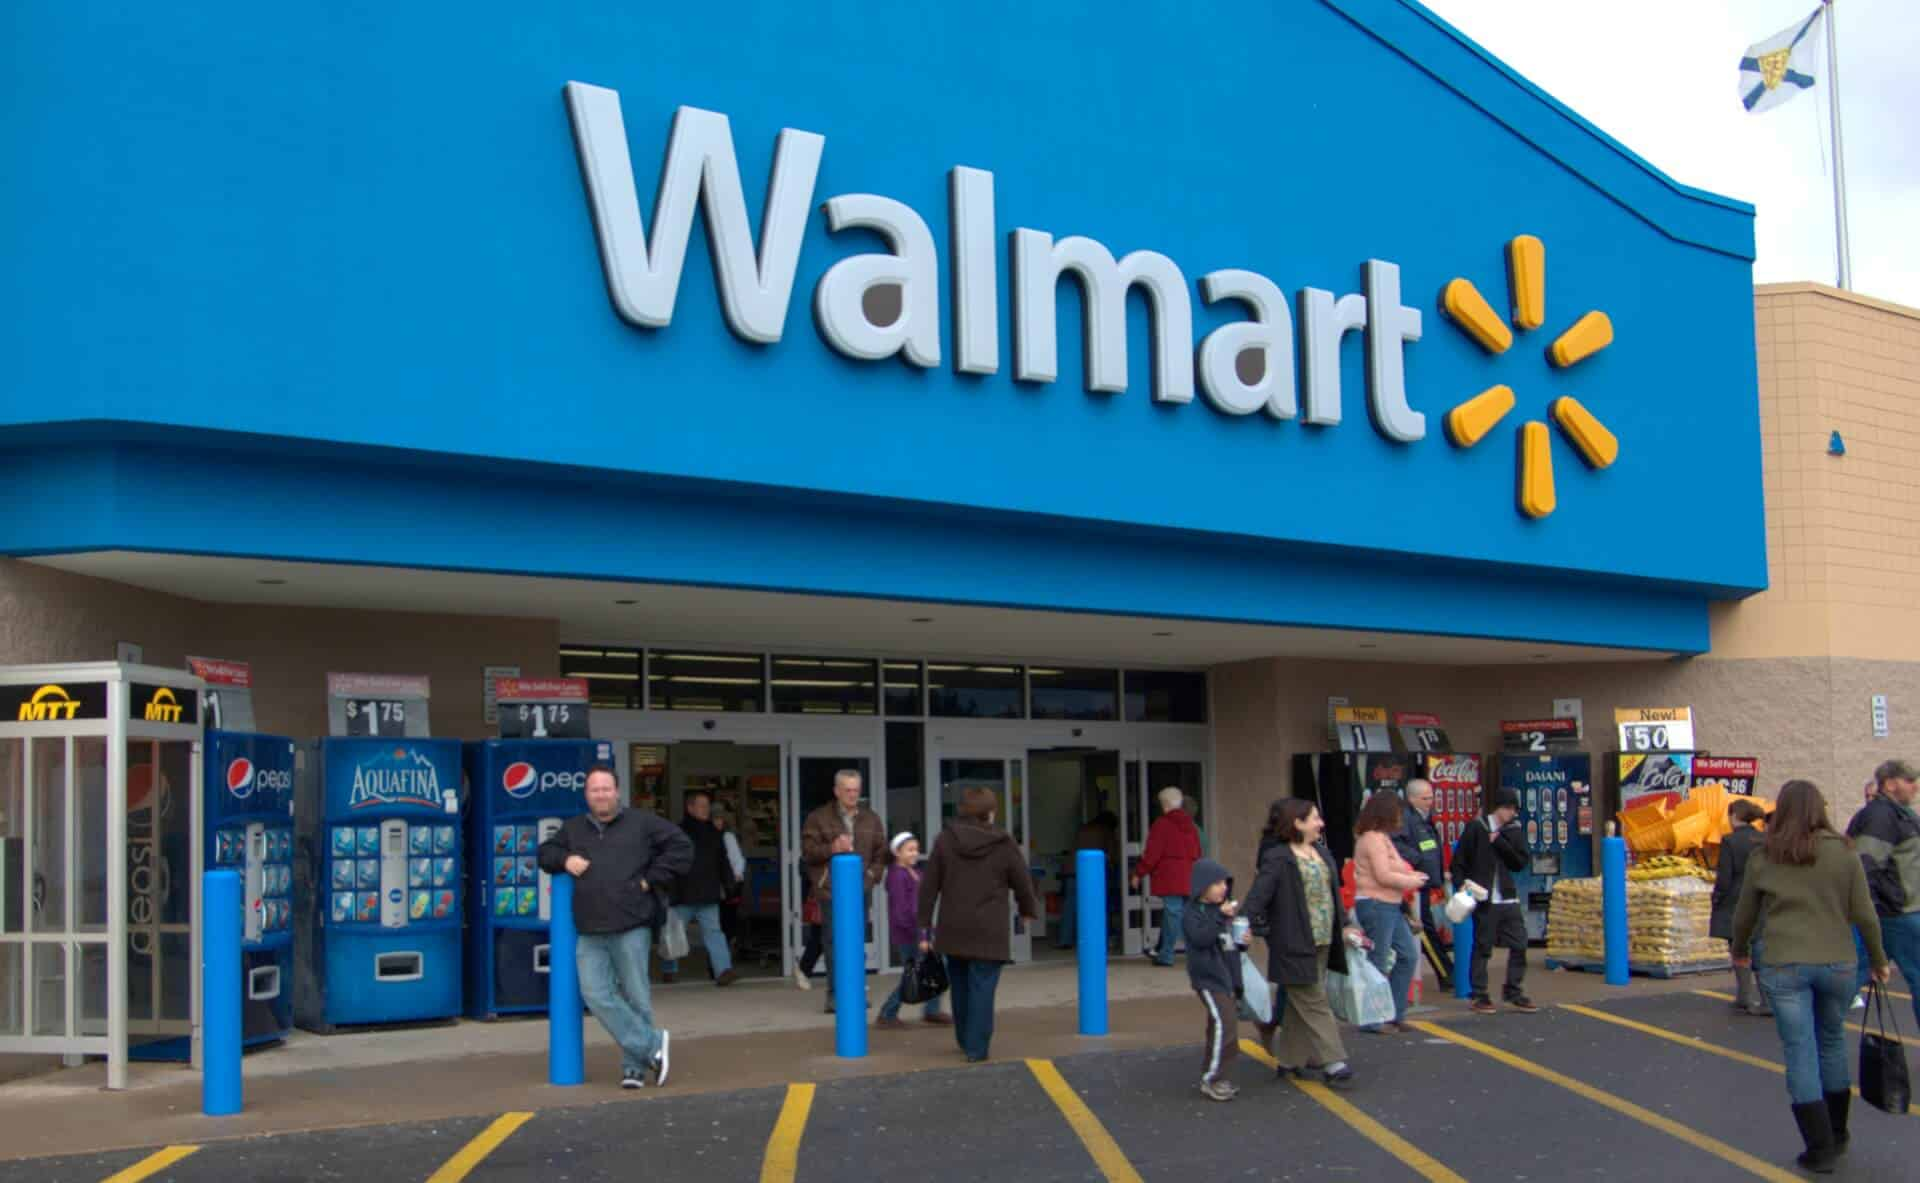 Walmart Sees Sales Growth as Digital Investments Remain in Focus